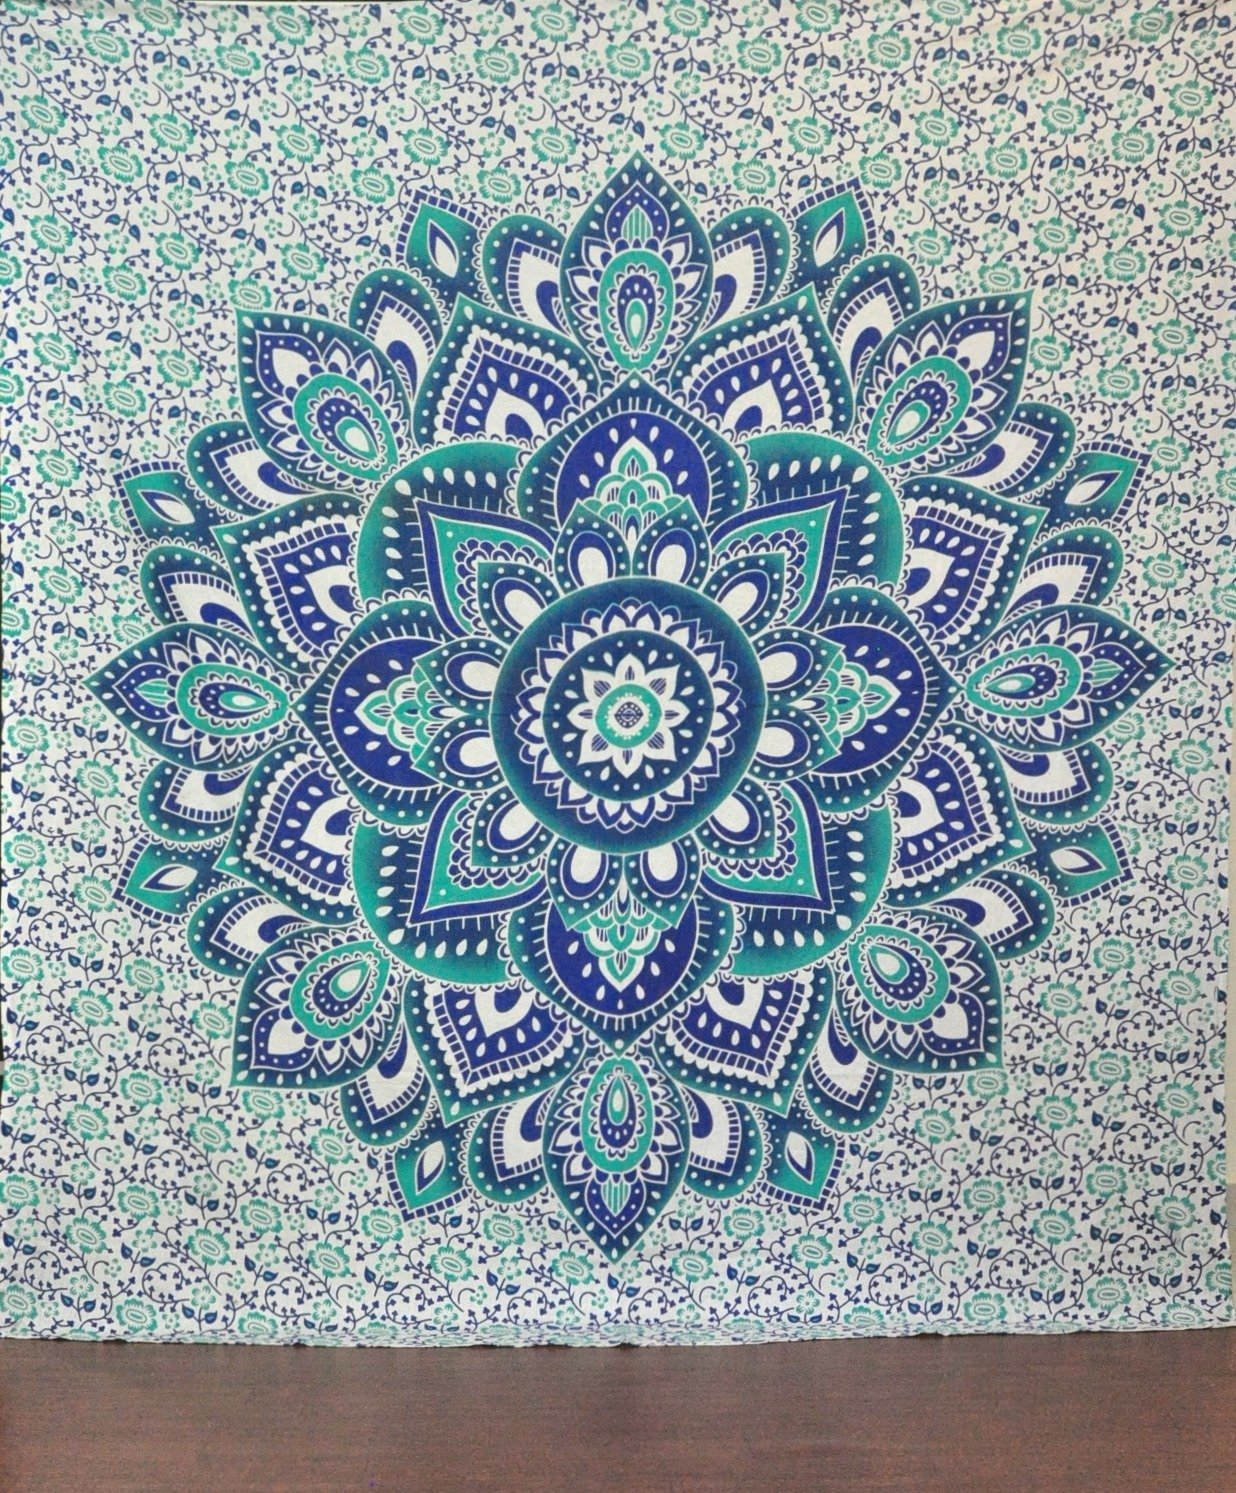 Amazon.com: Green And Blue Mandala Tapestry Ombre Mandala Wall Hanging  Hippie Hippy Tapestry Dorm Decor Psychedelic Tapestries Indian Tapestry  Bohemian ...